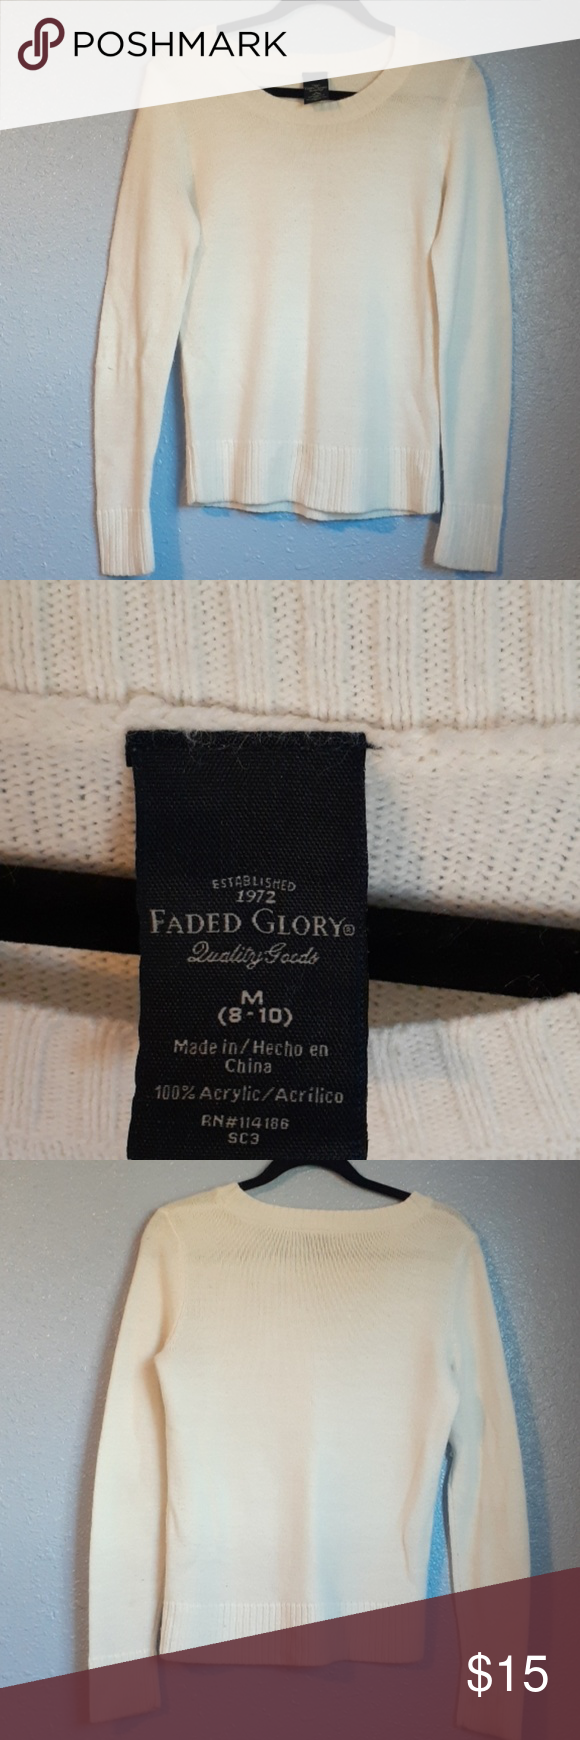 Faded Glory sweater | Faded glory, Sweaters, Sweaters for women